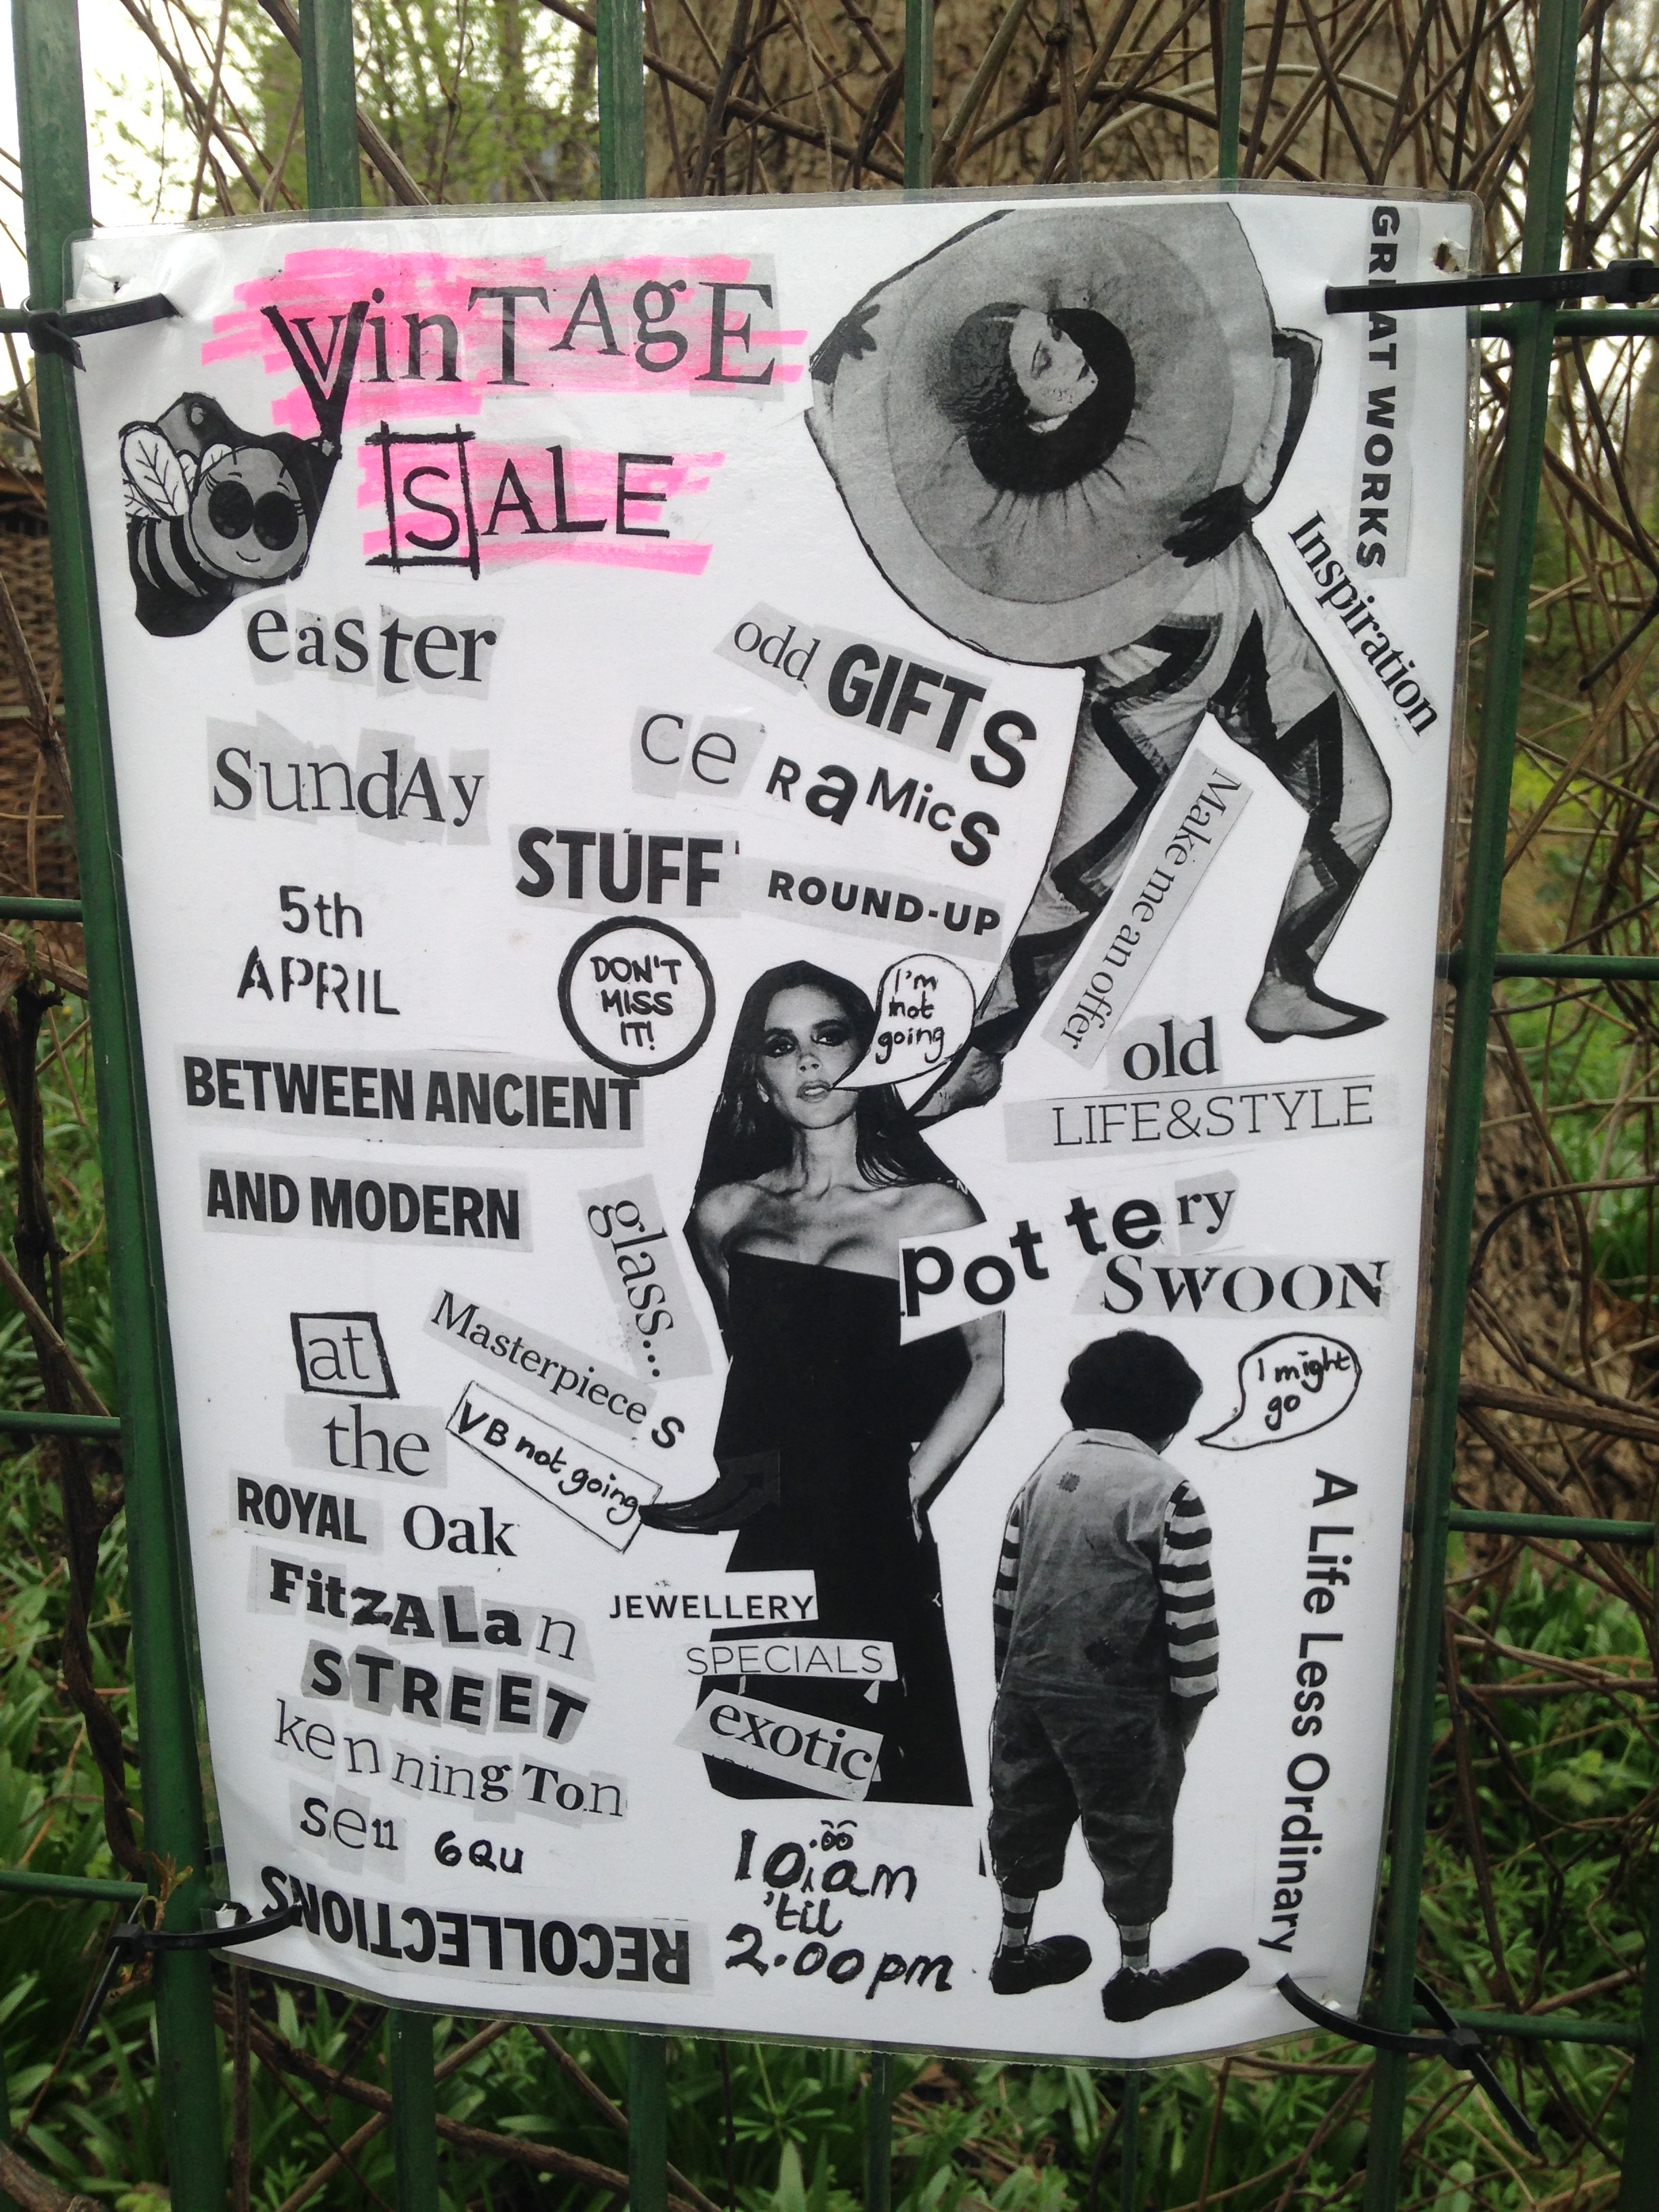 Royal Oak vintage sale poster - kenningtonrunoff.com